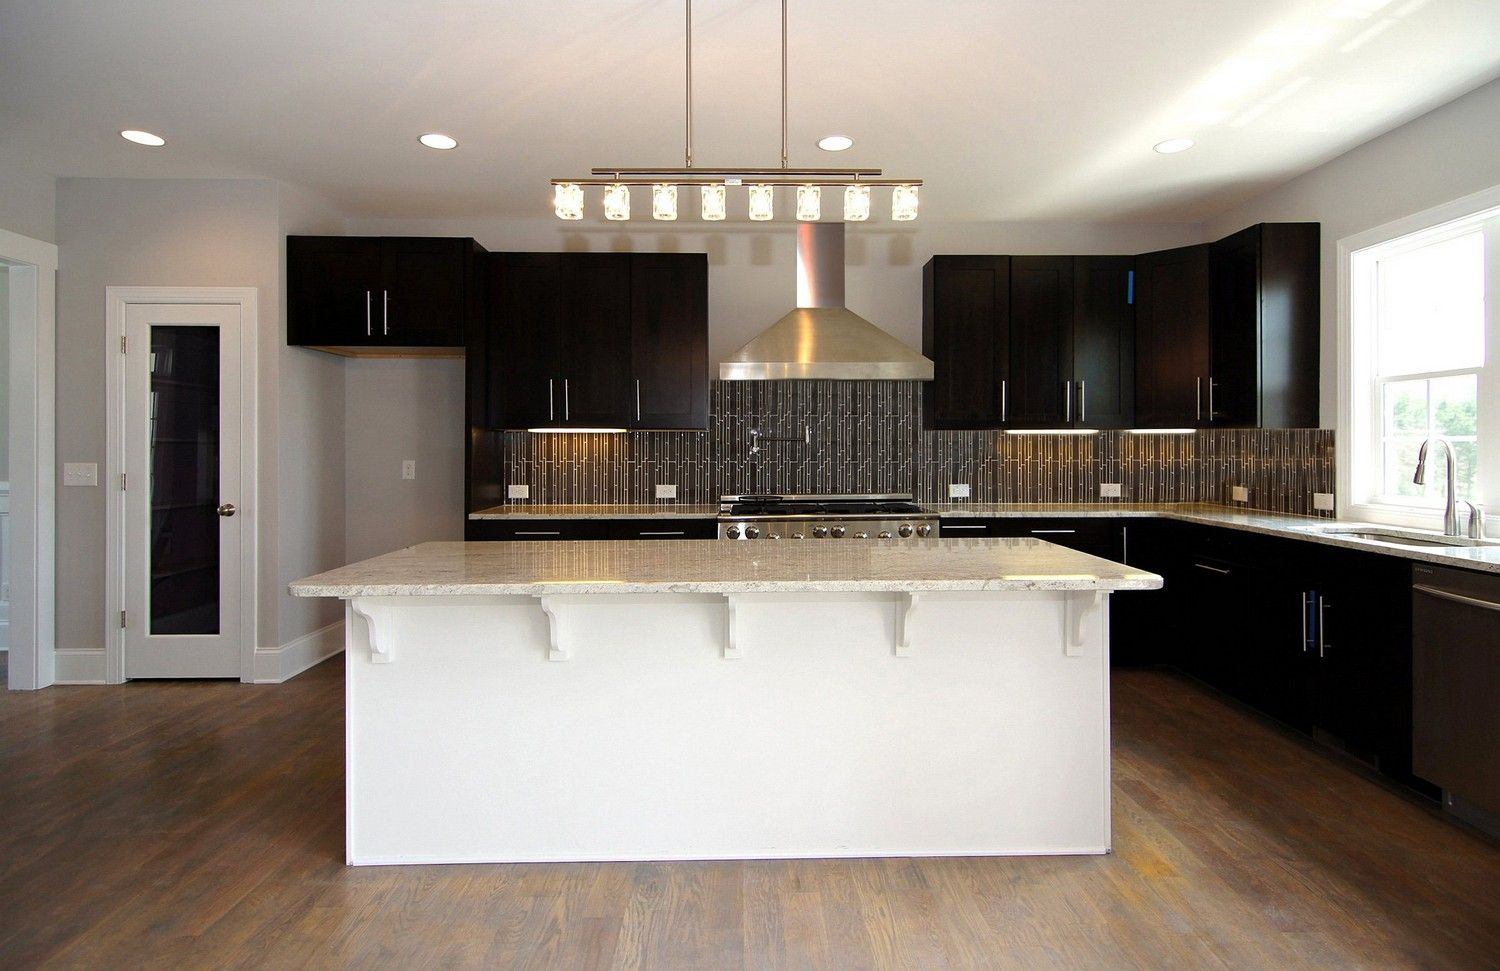 White Island With Seating Espresso Cabinets Stainless Steel Range Hood Glass Tile Back Spl Kitchen Color Trends Kitchen Cabinet Dimensions Espresso Cabinets